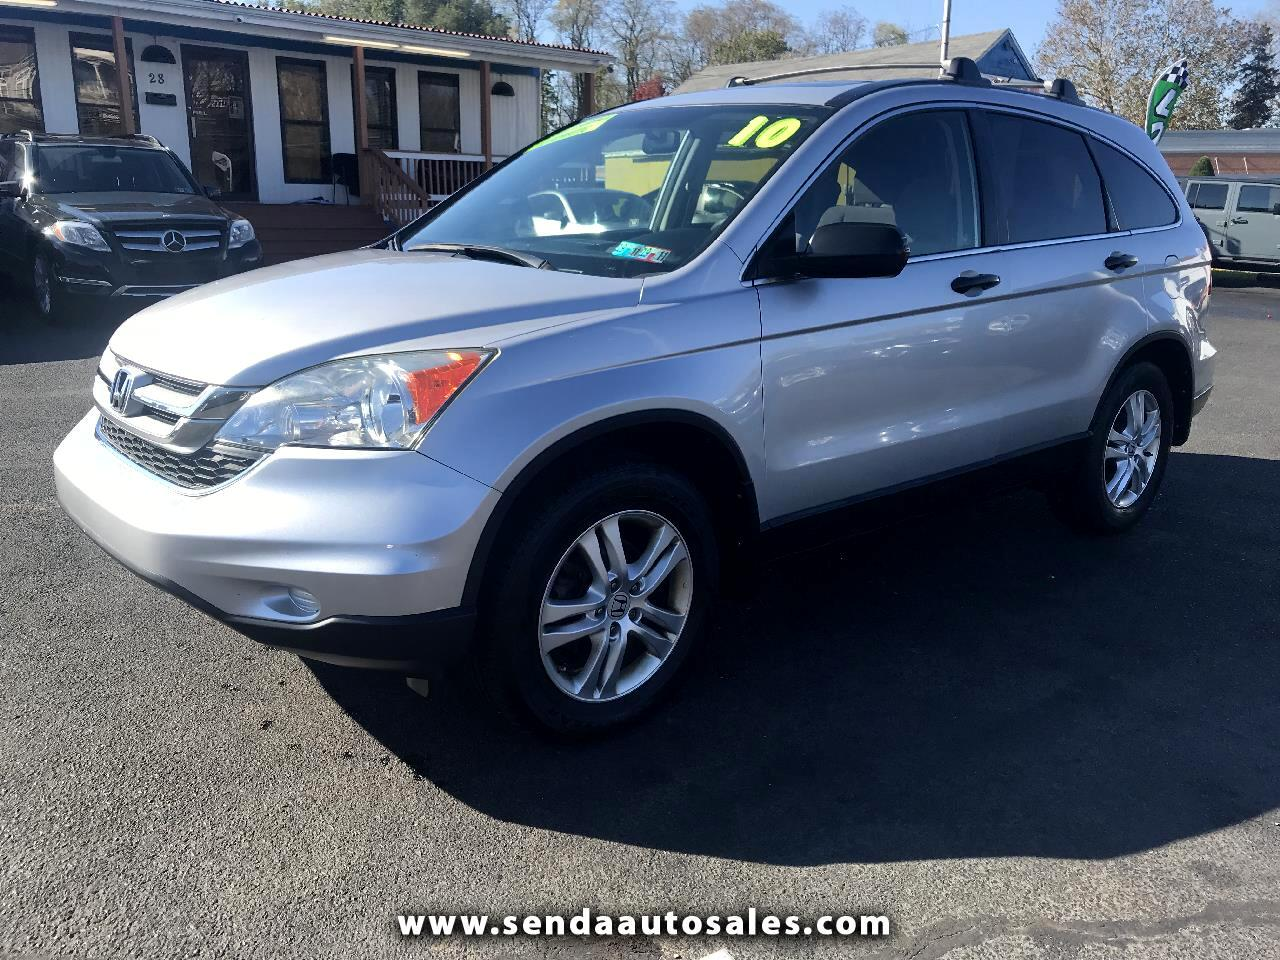 2010 Honda Crv For Sale >> Used 2010 Honda Cr V For Sale In Reading Pa 19601 Senda Auto Sales